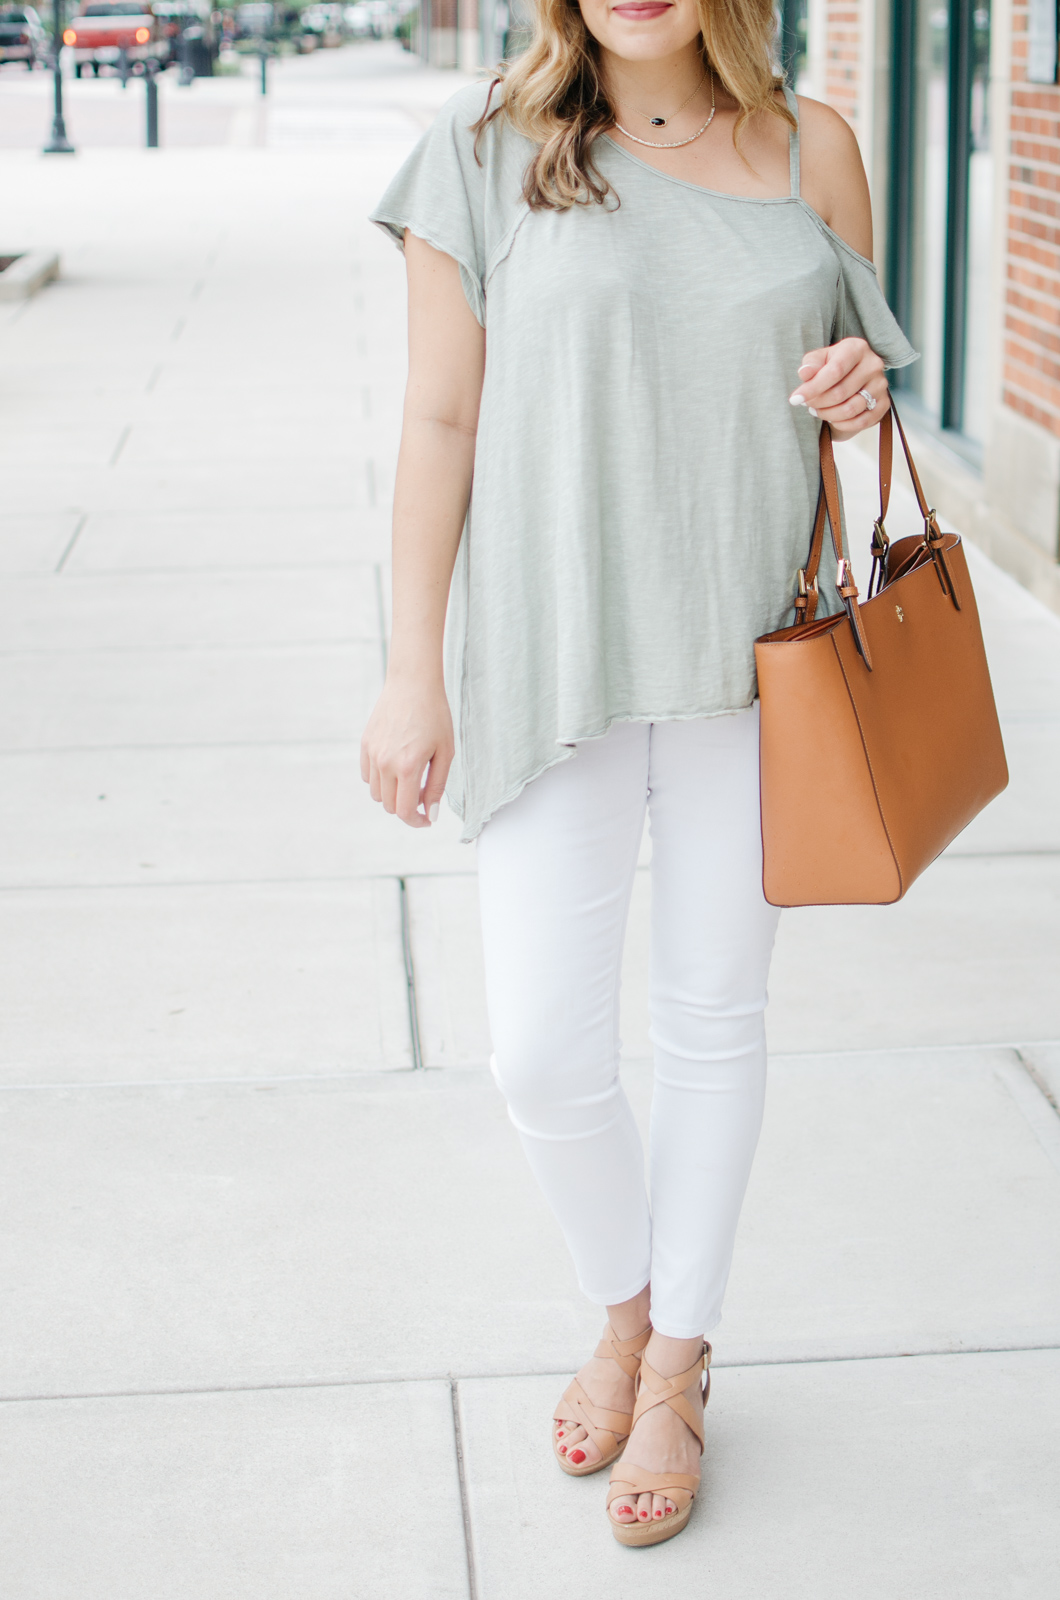 upgraded jeans and a tee outfit - white jeans and a tee | For more cute summer outfit ideas, head to bylaurenm.com!